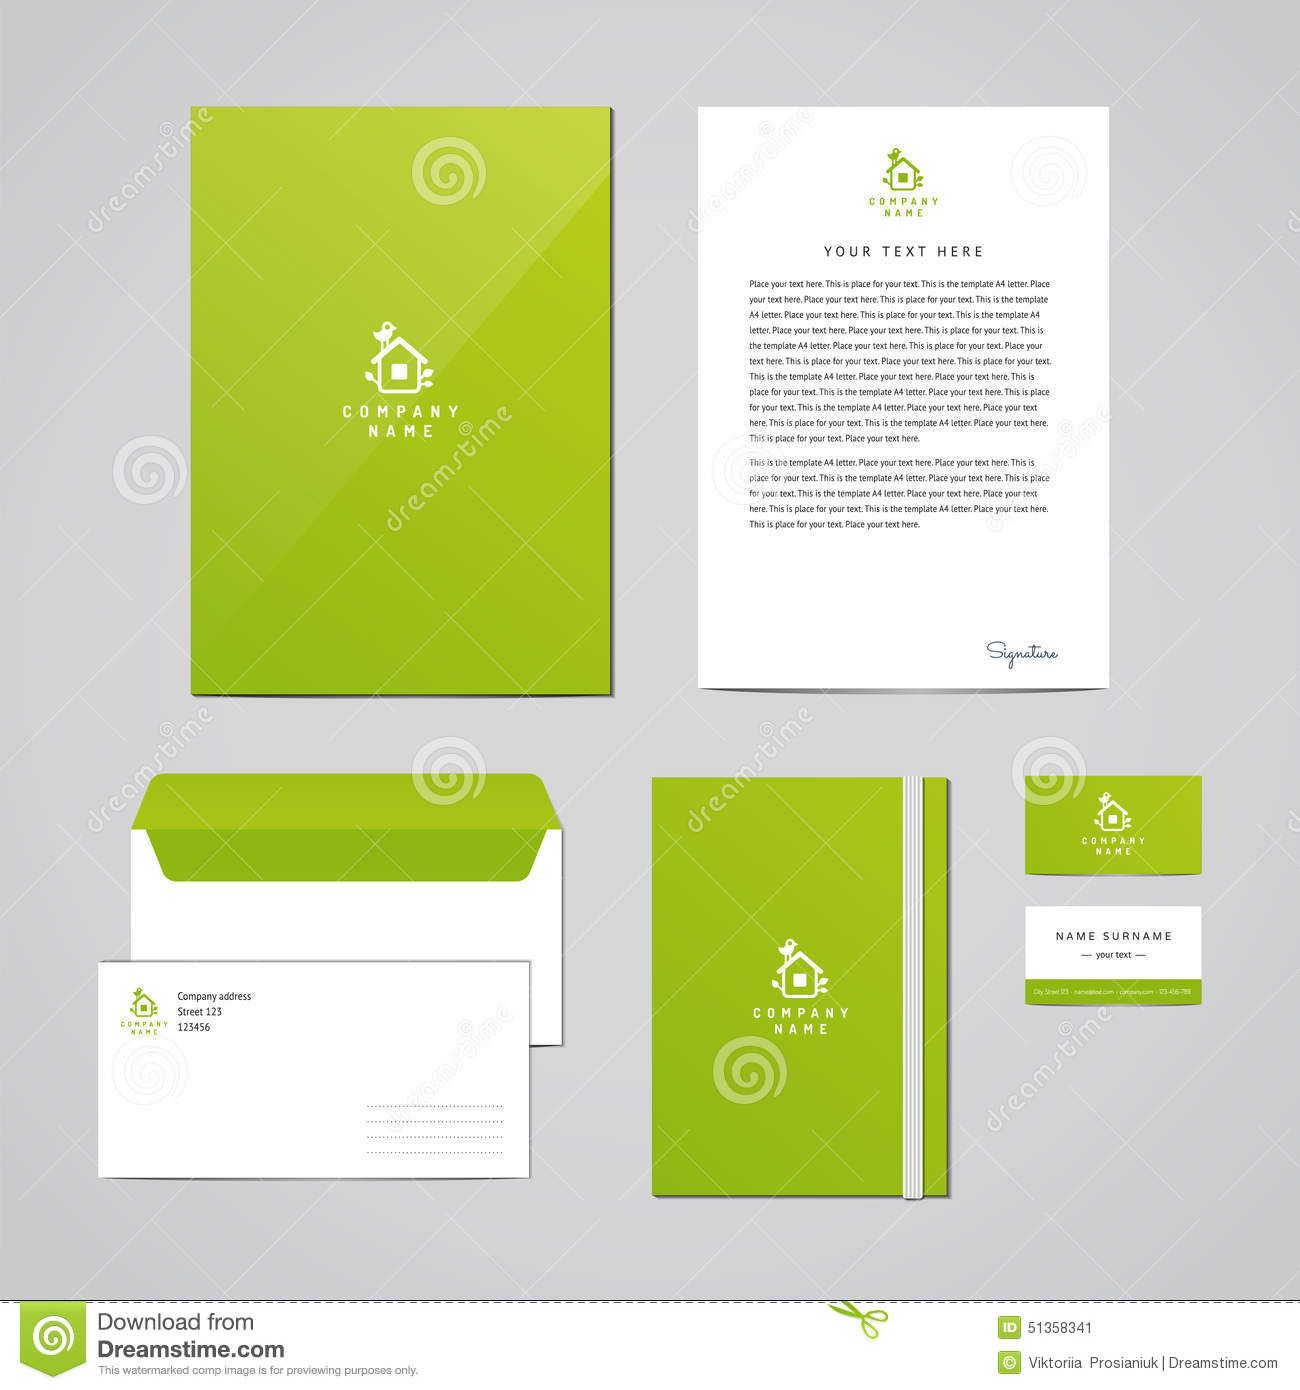 corporate letterhead template royalty free stock photography ...